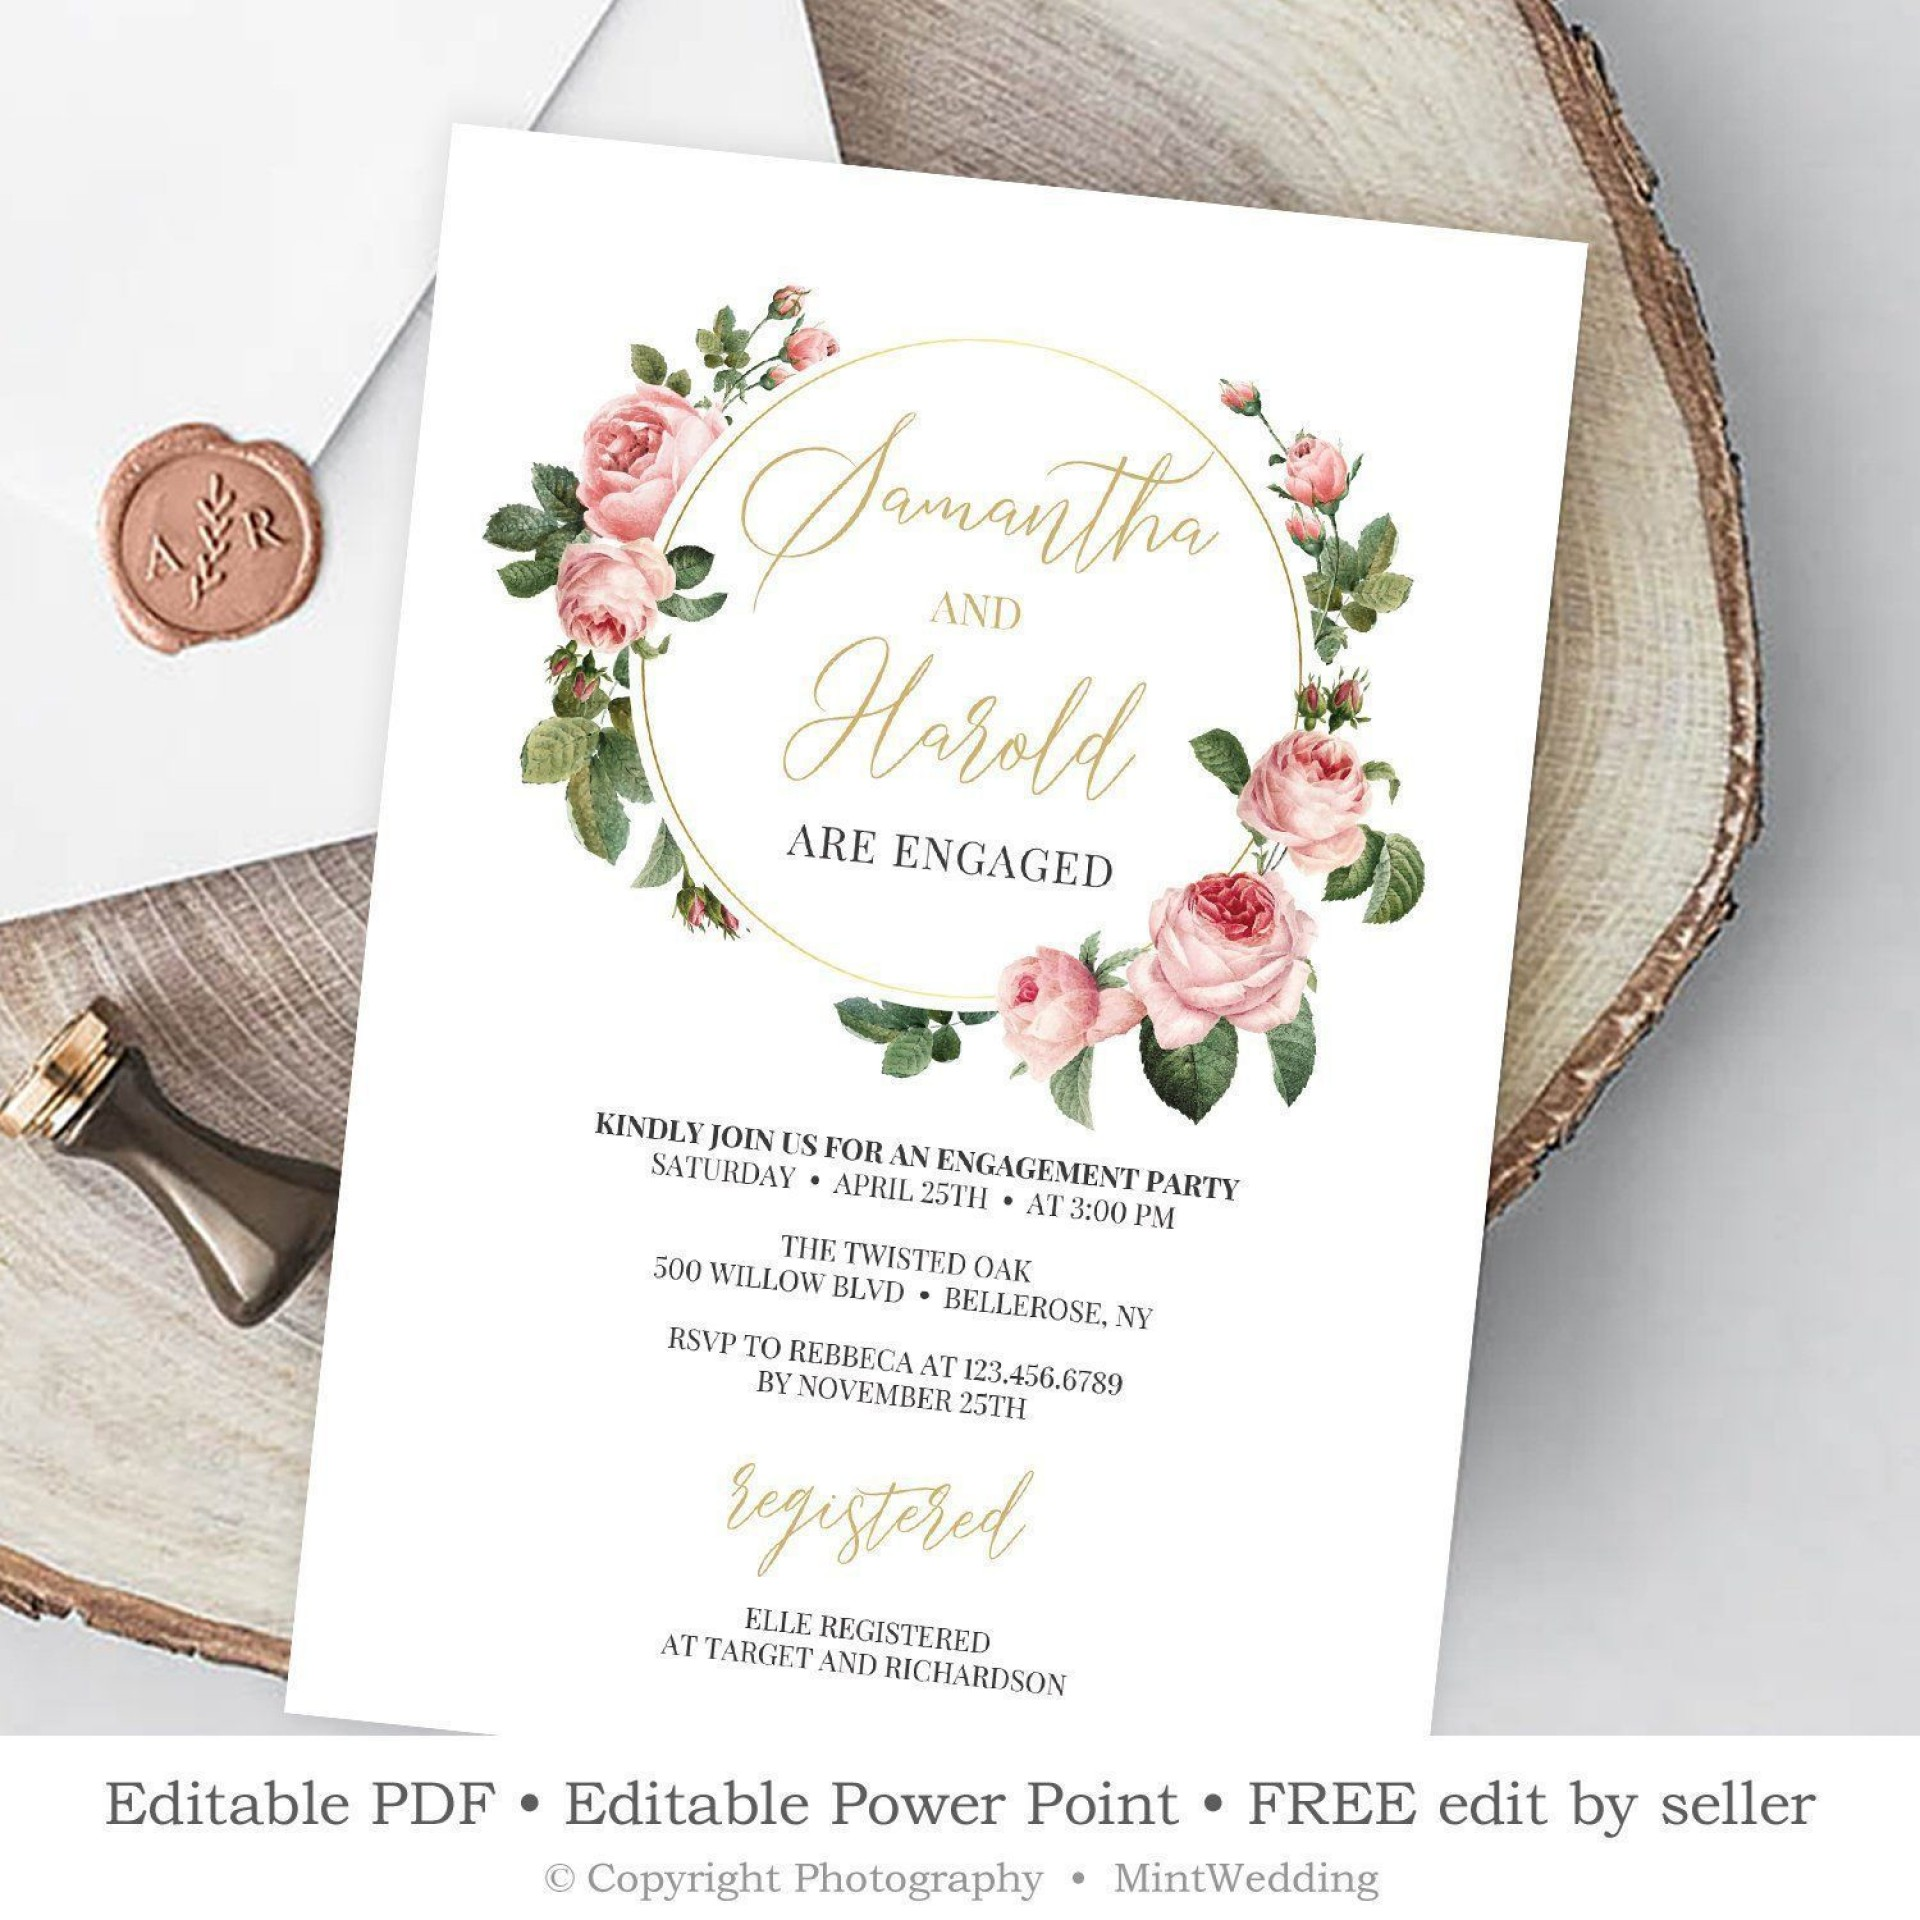 009 Archaicawful Free Engagement Invitation Template Online With Photo Concept 1920